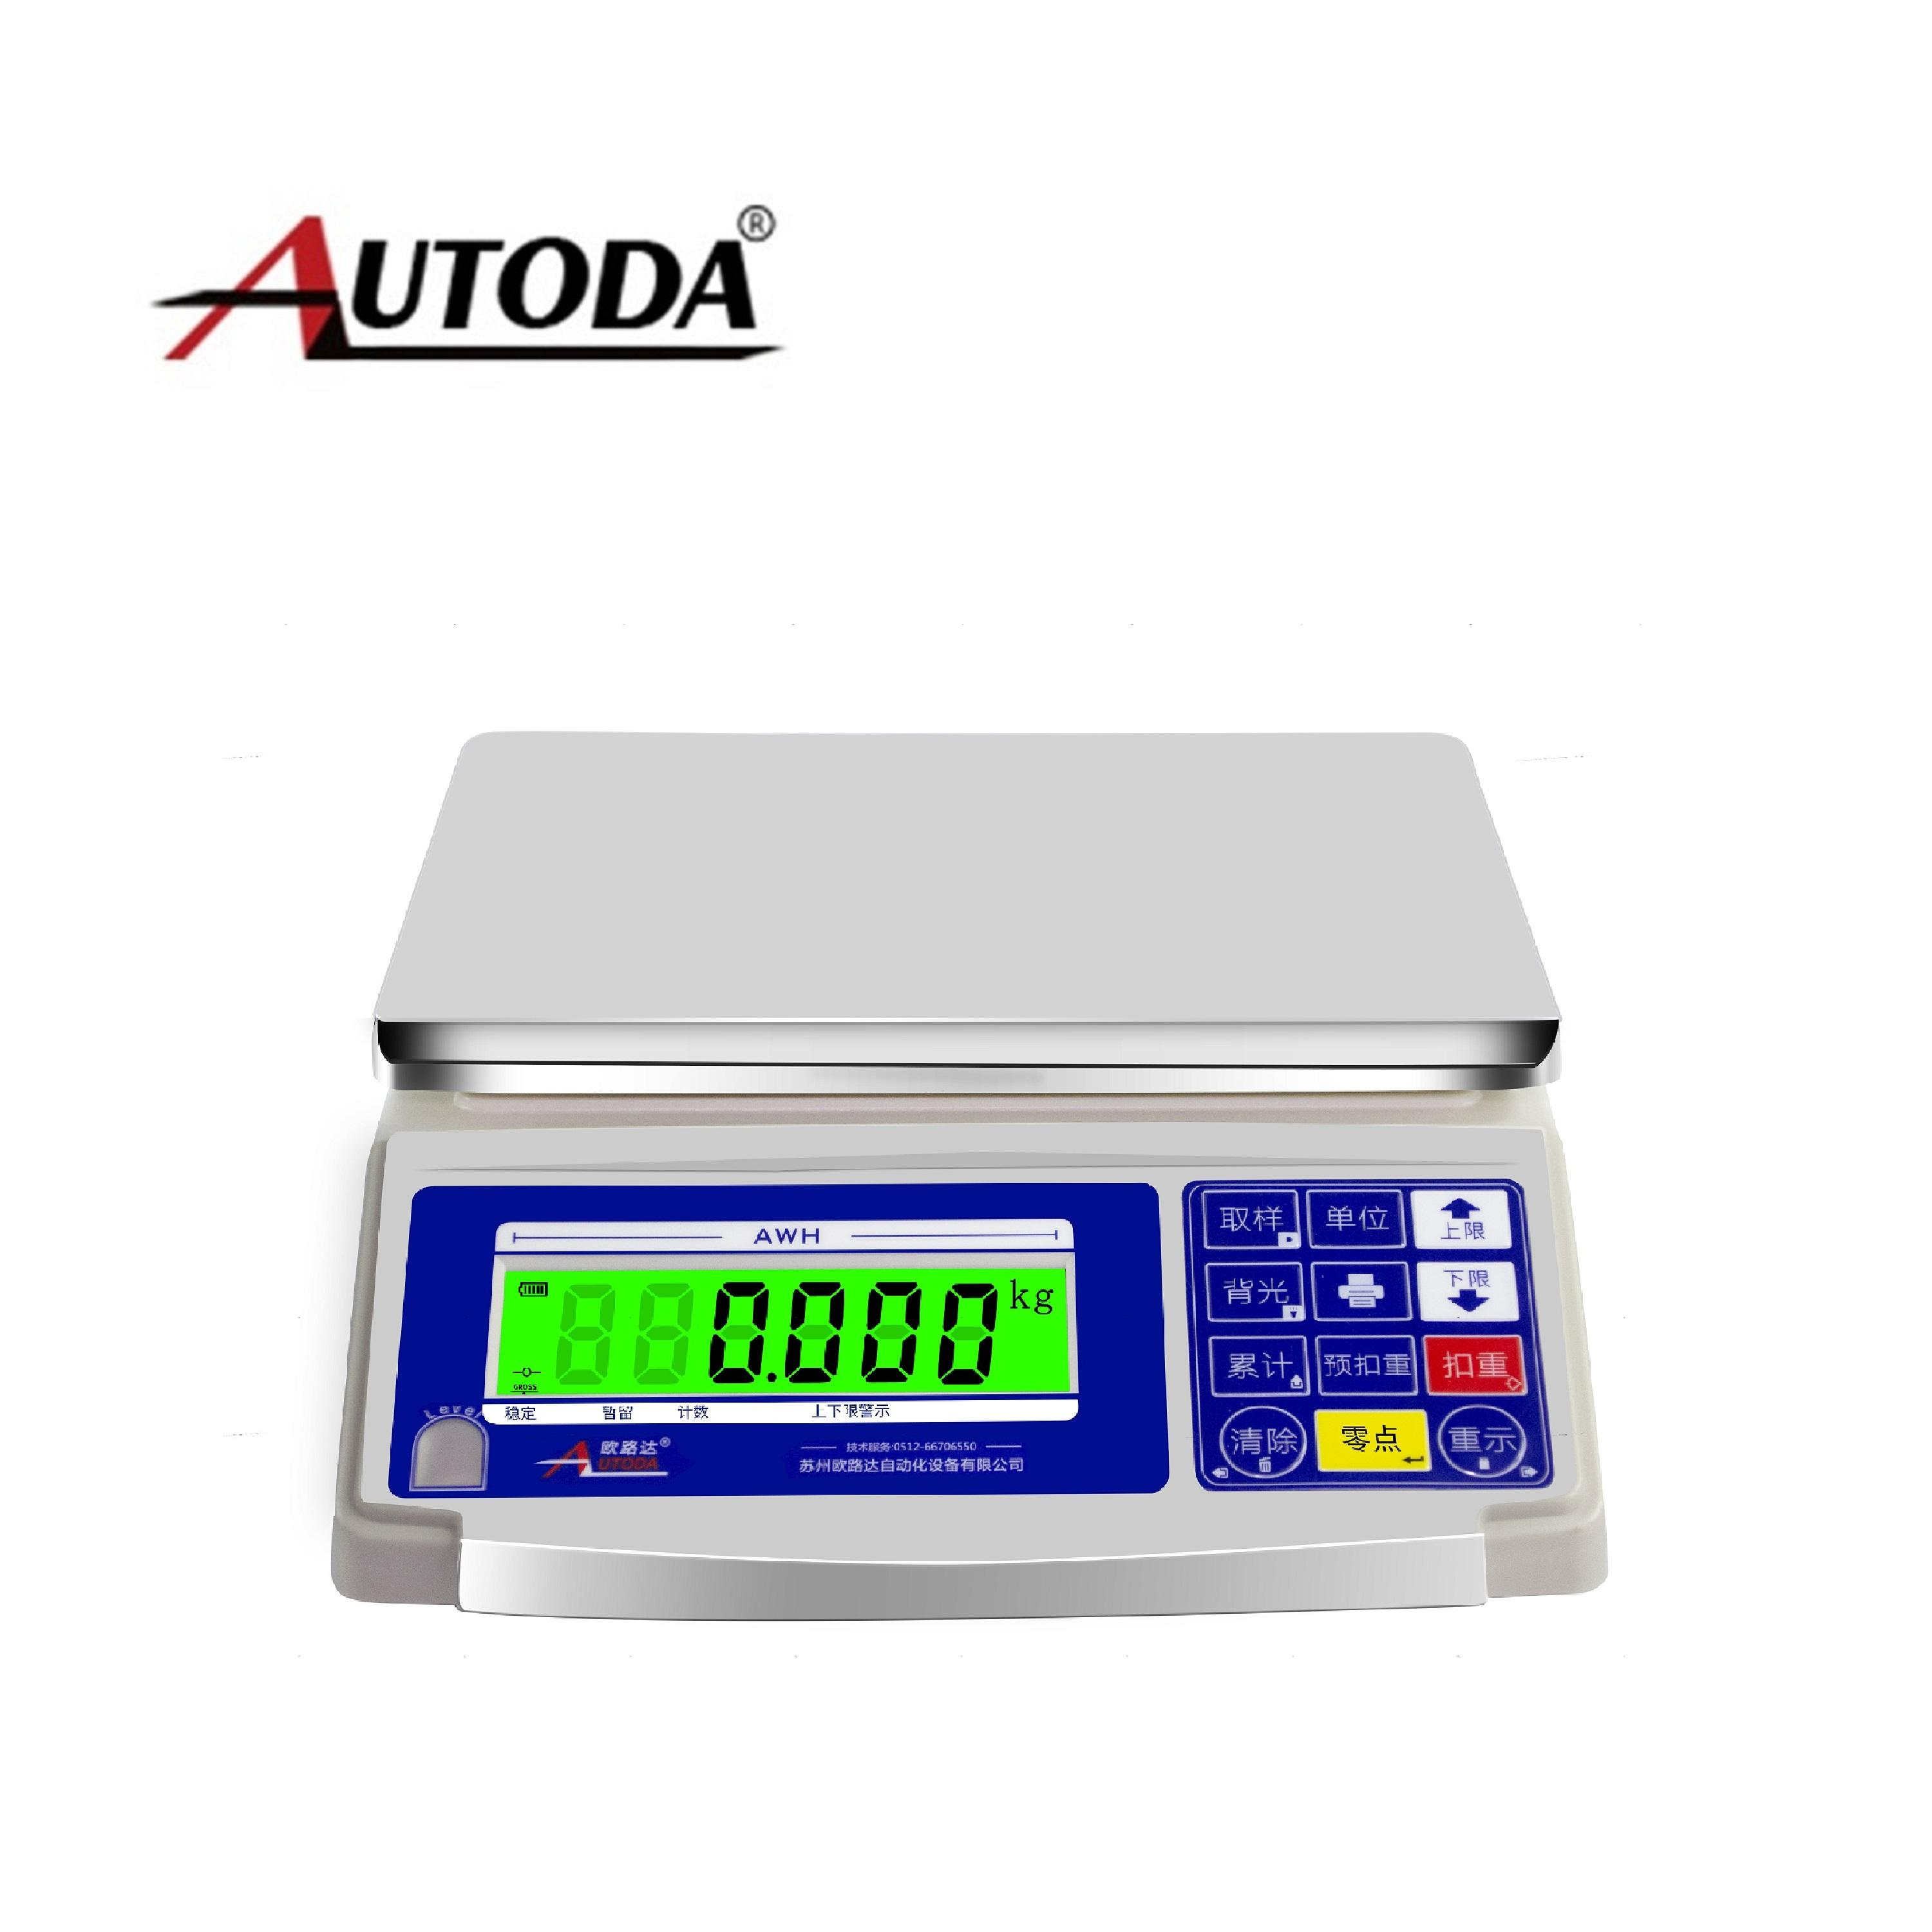 Autoda ERP LCD display digital electronic weighing scale